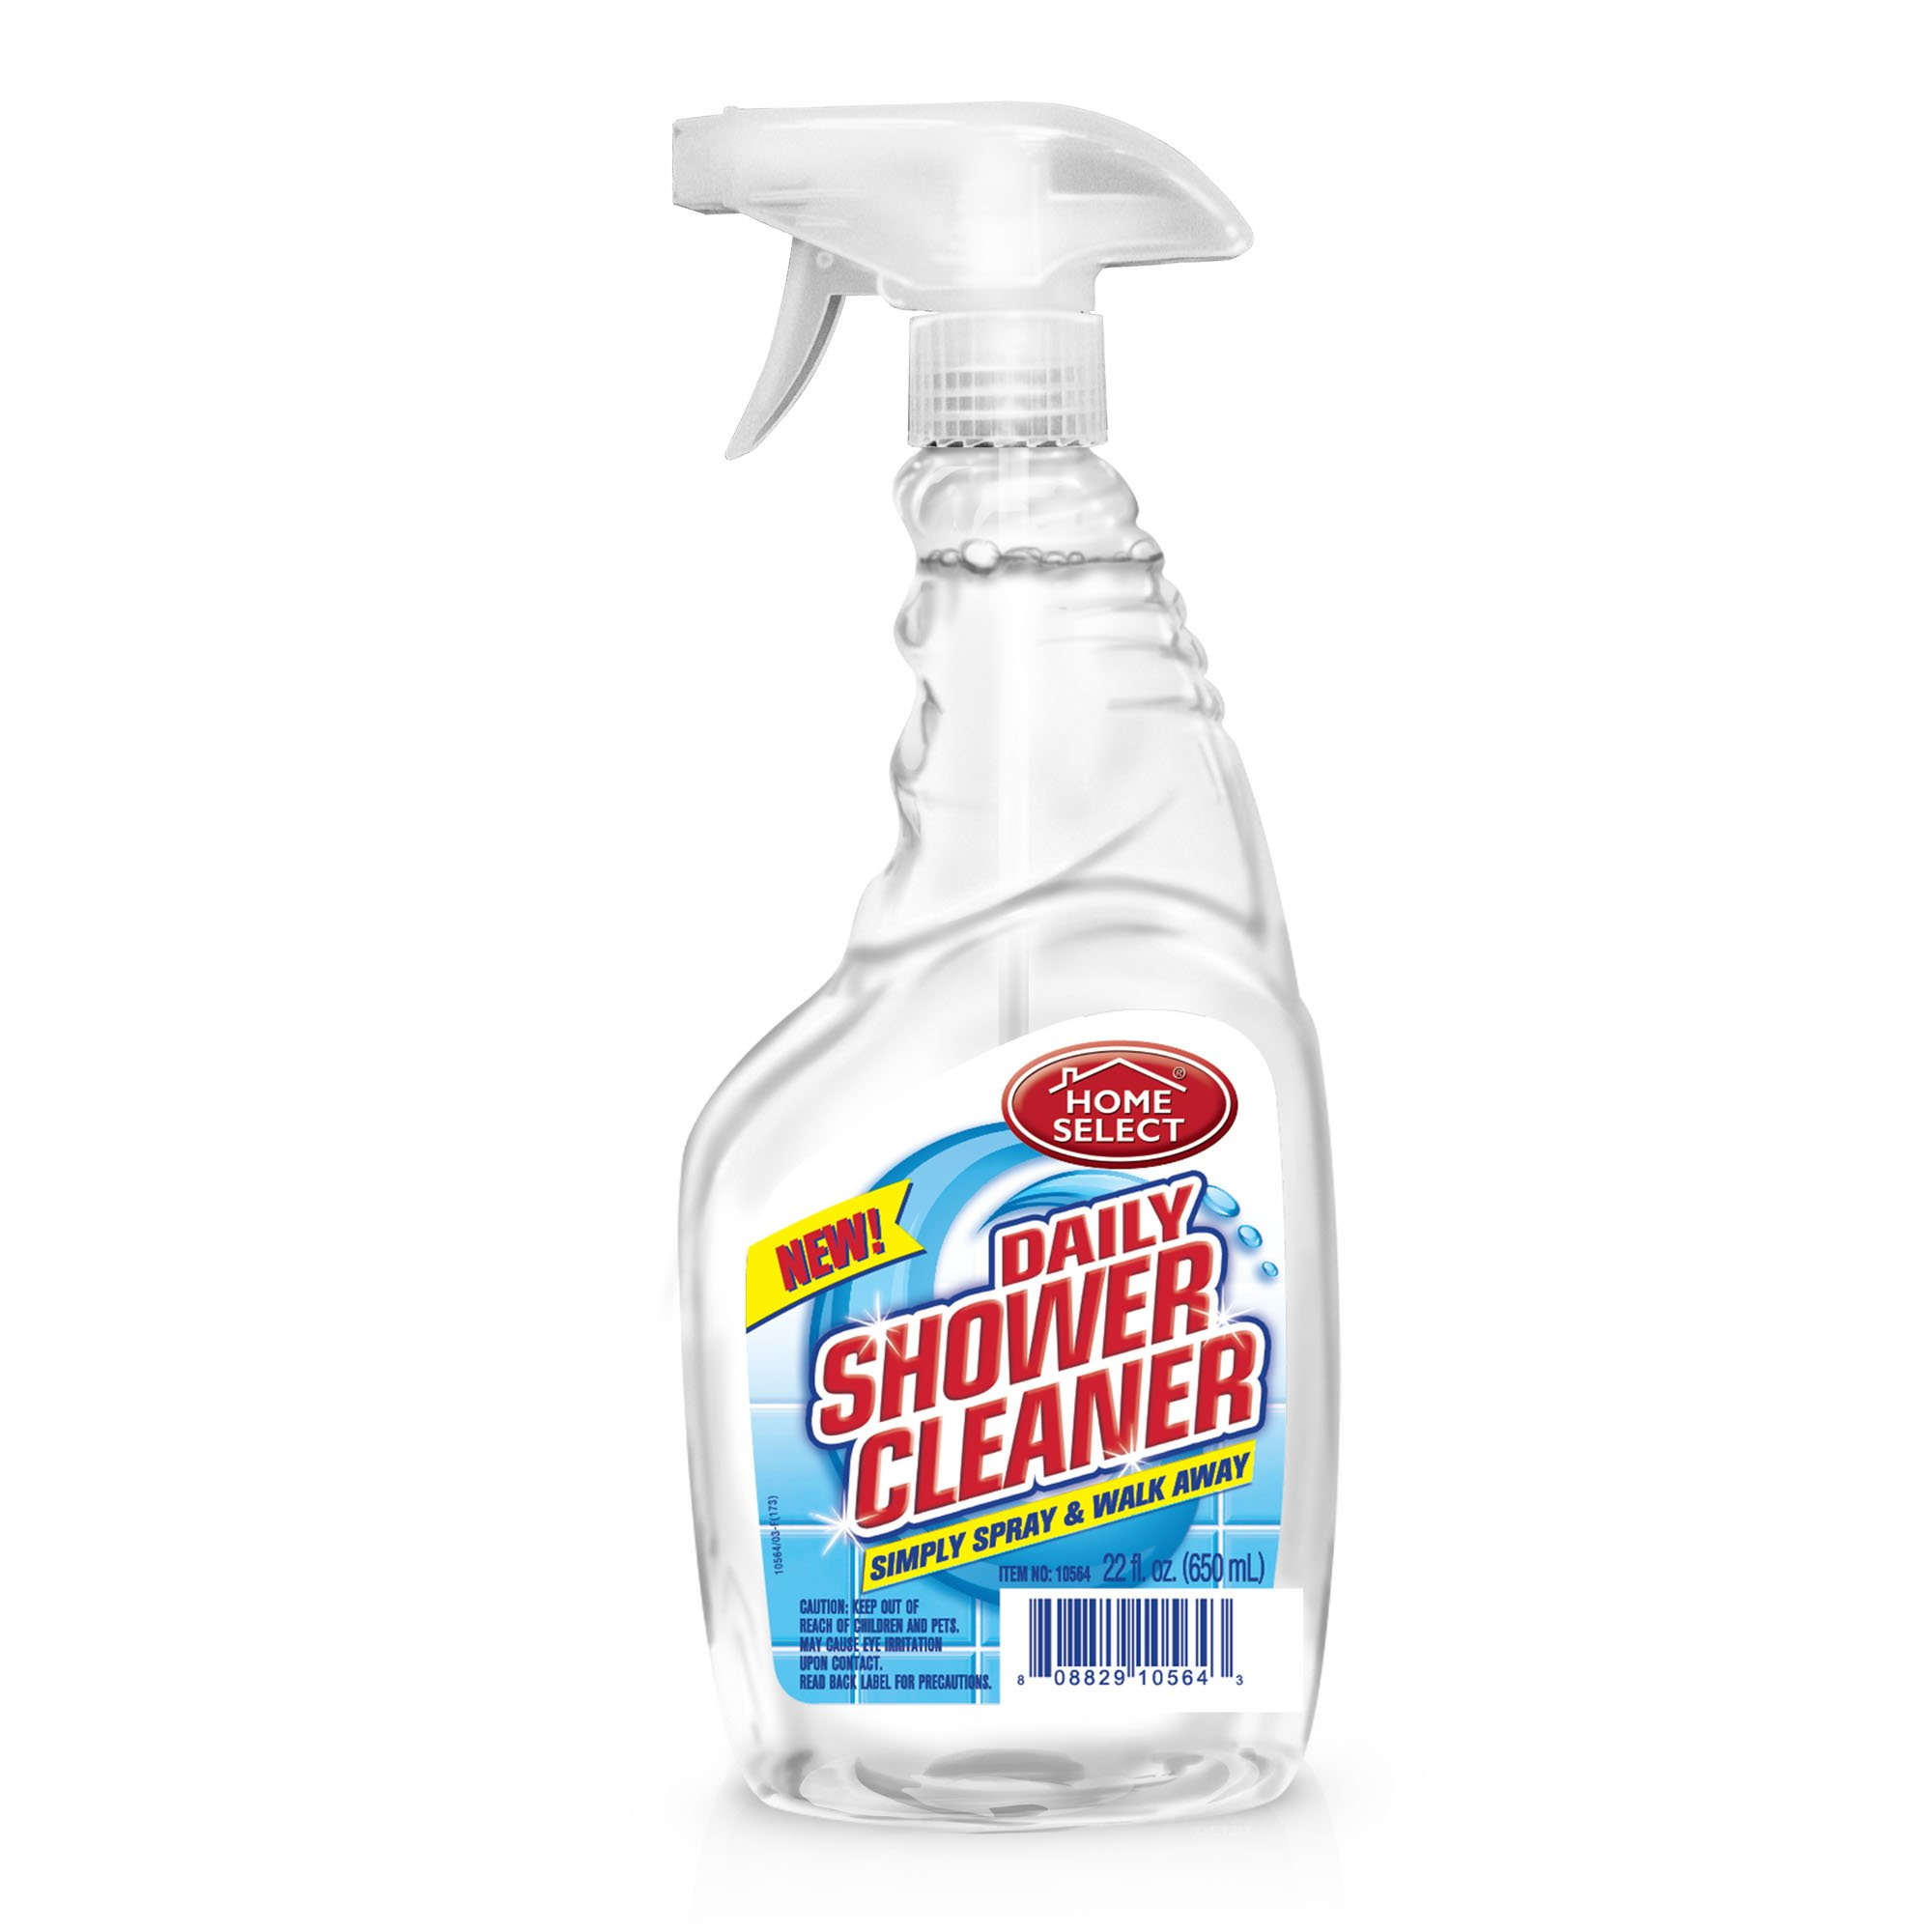 Home Select Daily Shower Cleaner by Home Select